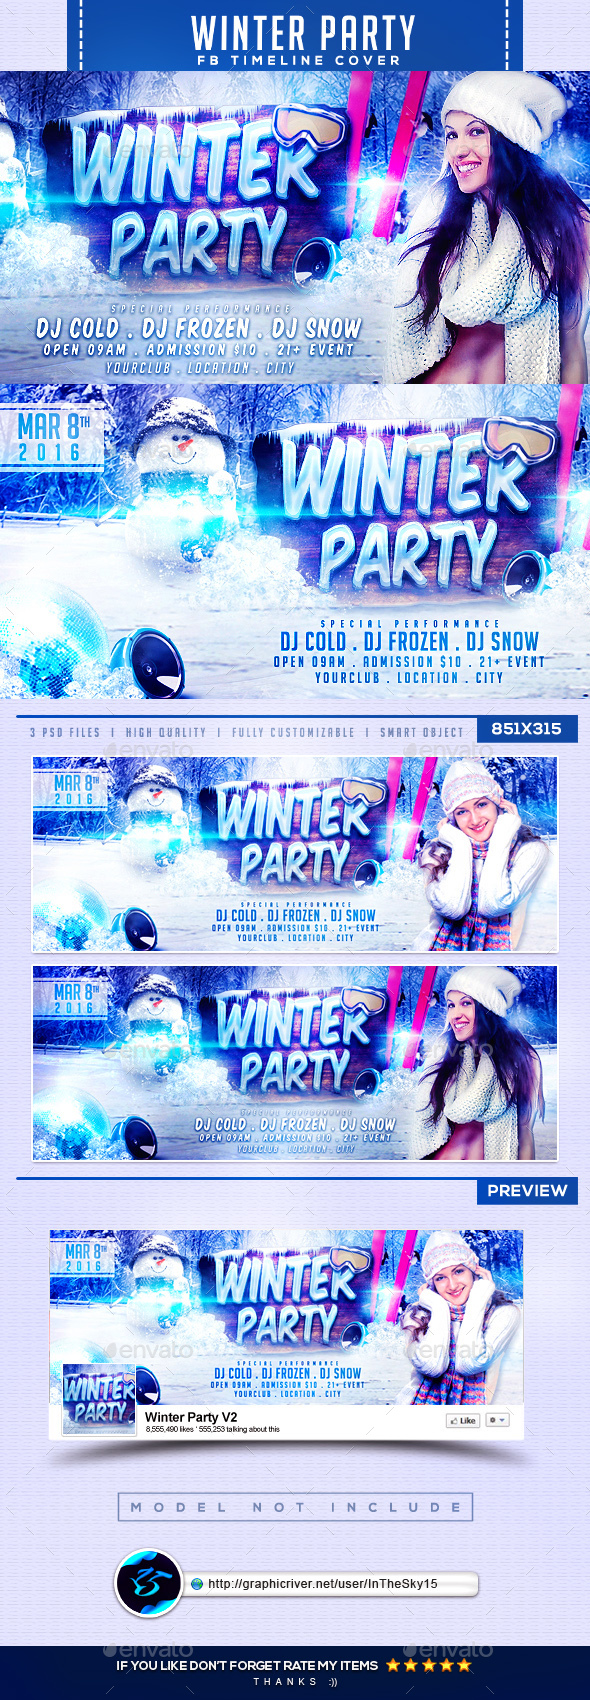 Winter Party V2 FB Timeline Cover - Facebook Timeline Covers Social Media